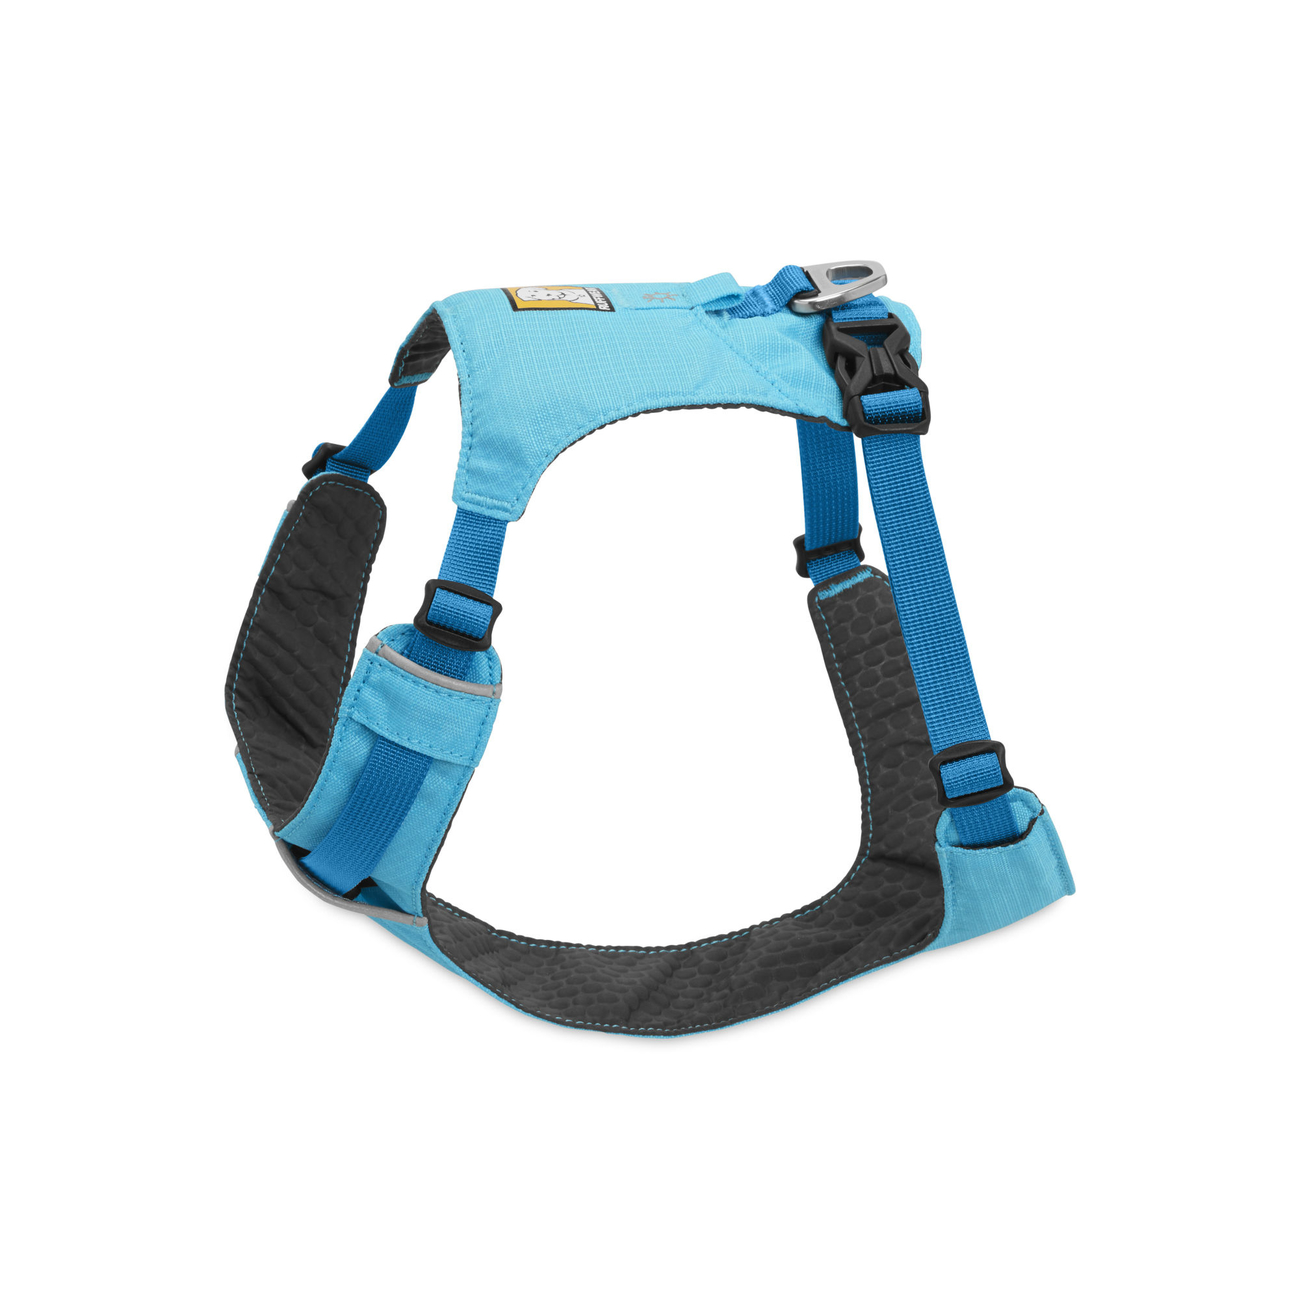 Ruffwear Hi & Light Harness Hundegeschirr, M, 69-81 cm, Blue Atoll